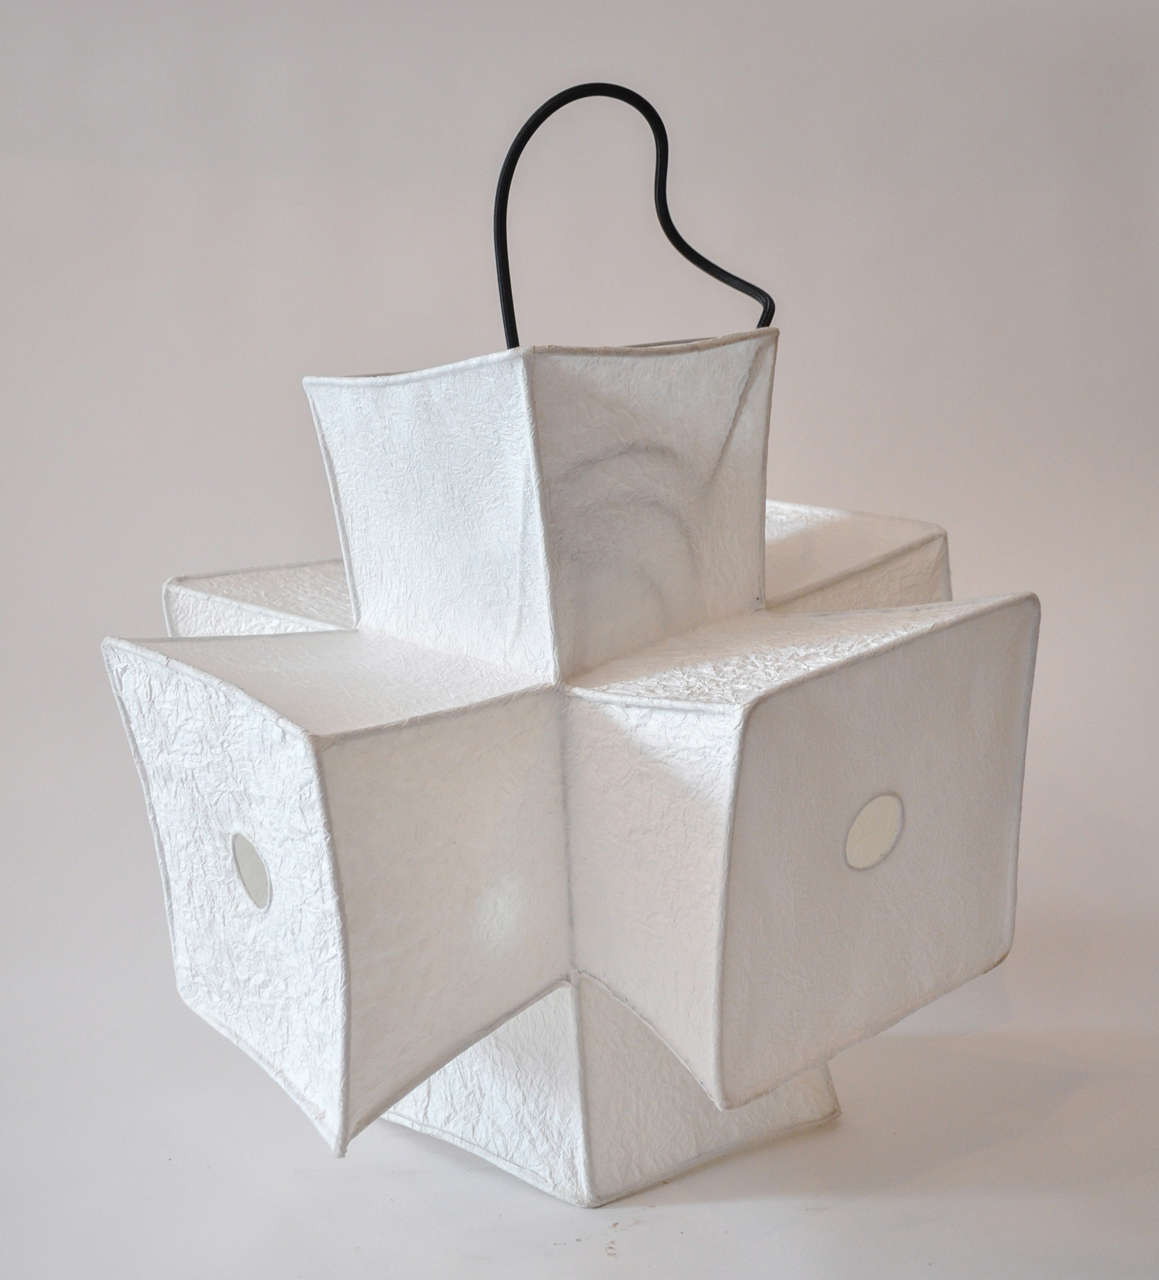 Light fixture and paper lantern by andrew stansell at 1stdibs - Paper lighting fixtures ...